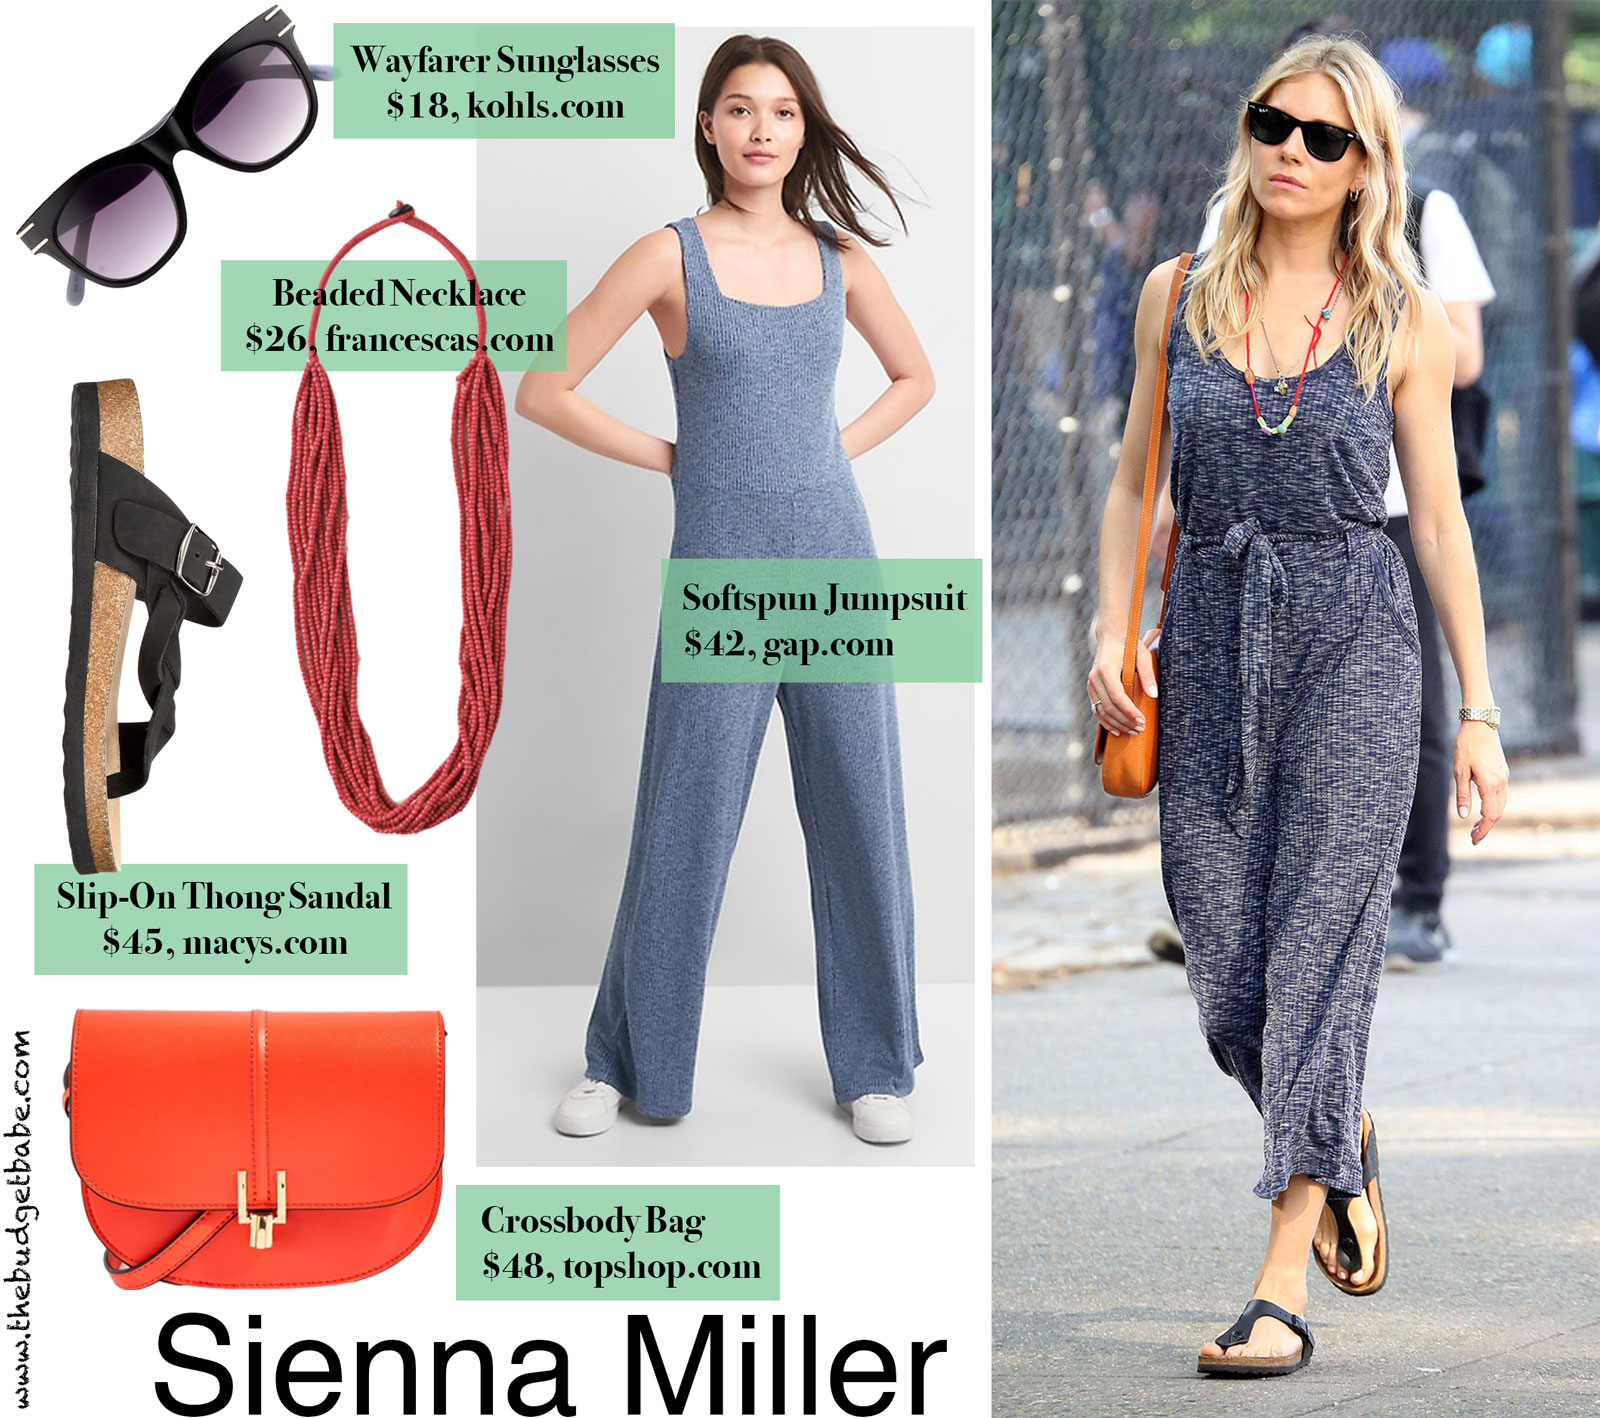 Sienna Miller's Jumpsuit and Birkenstocks Look for Less